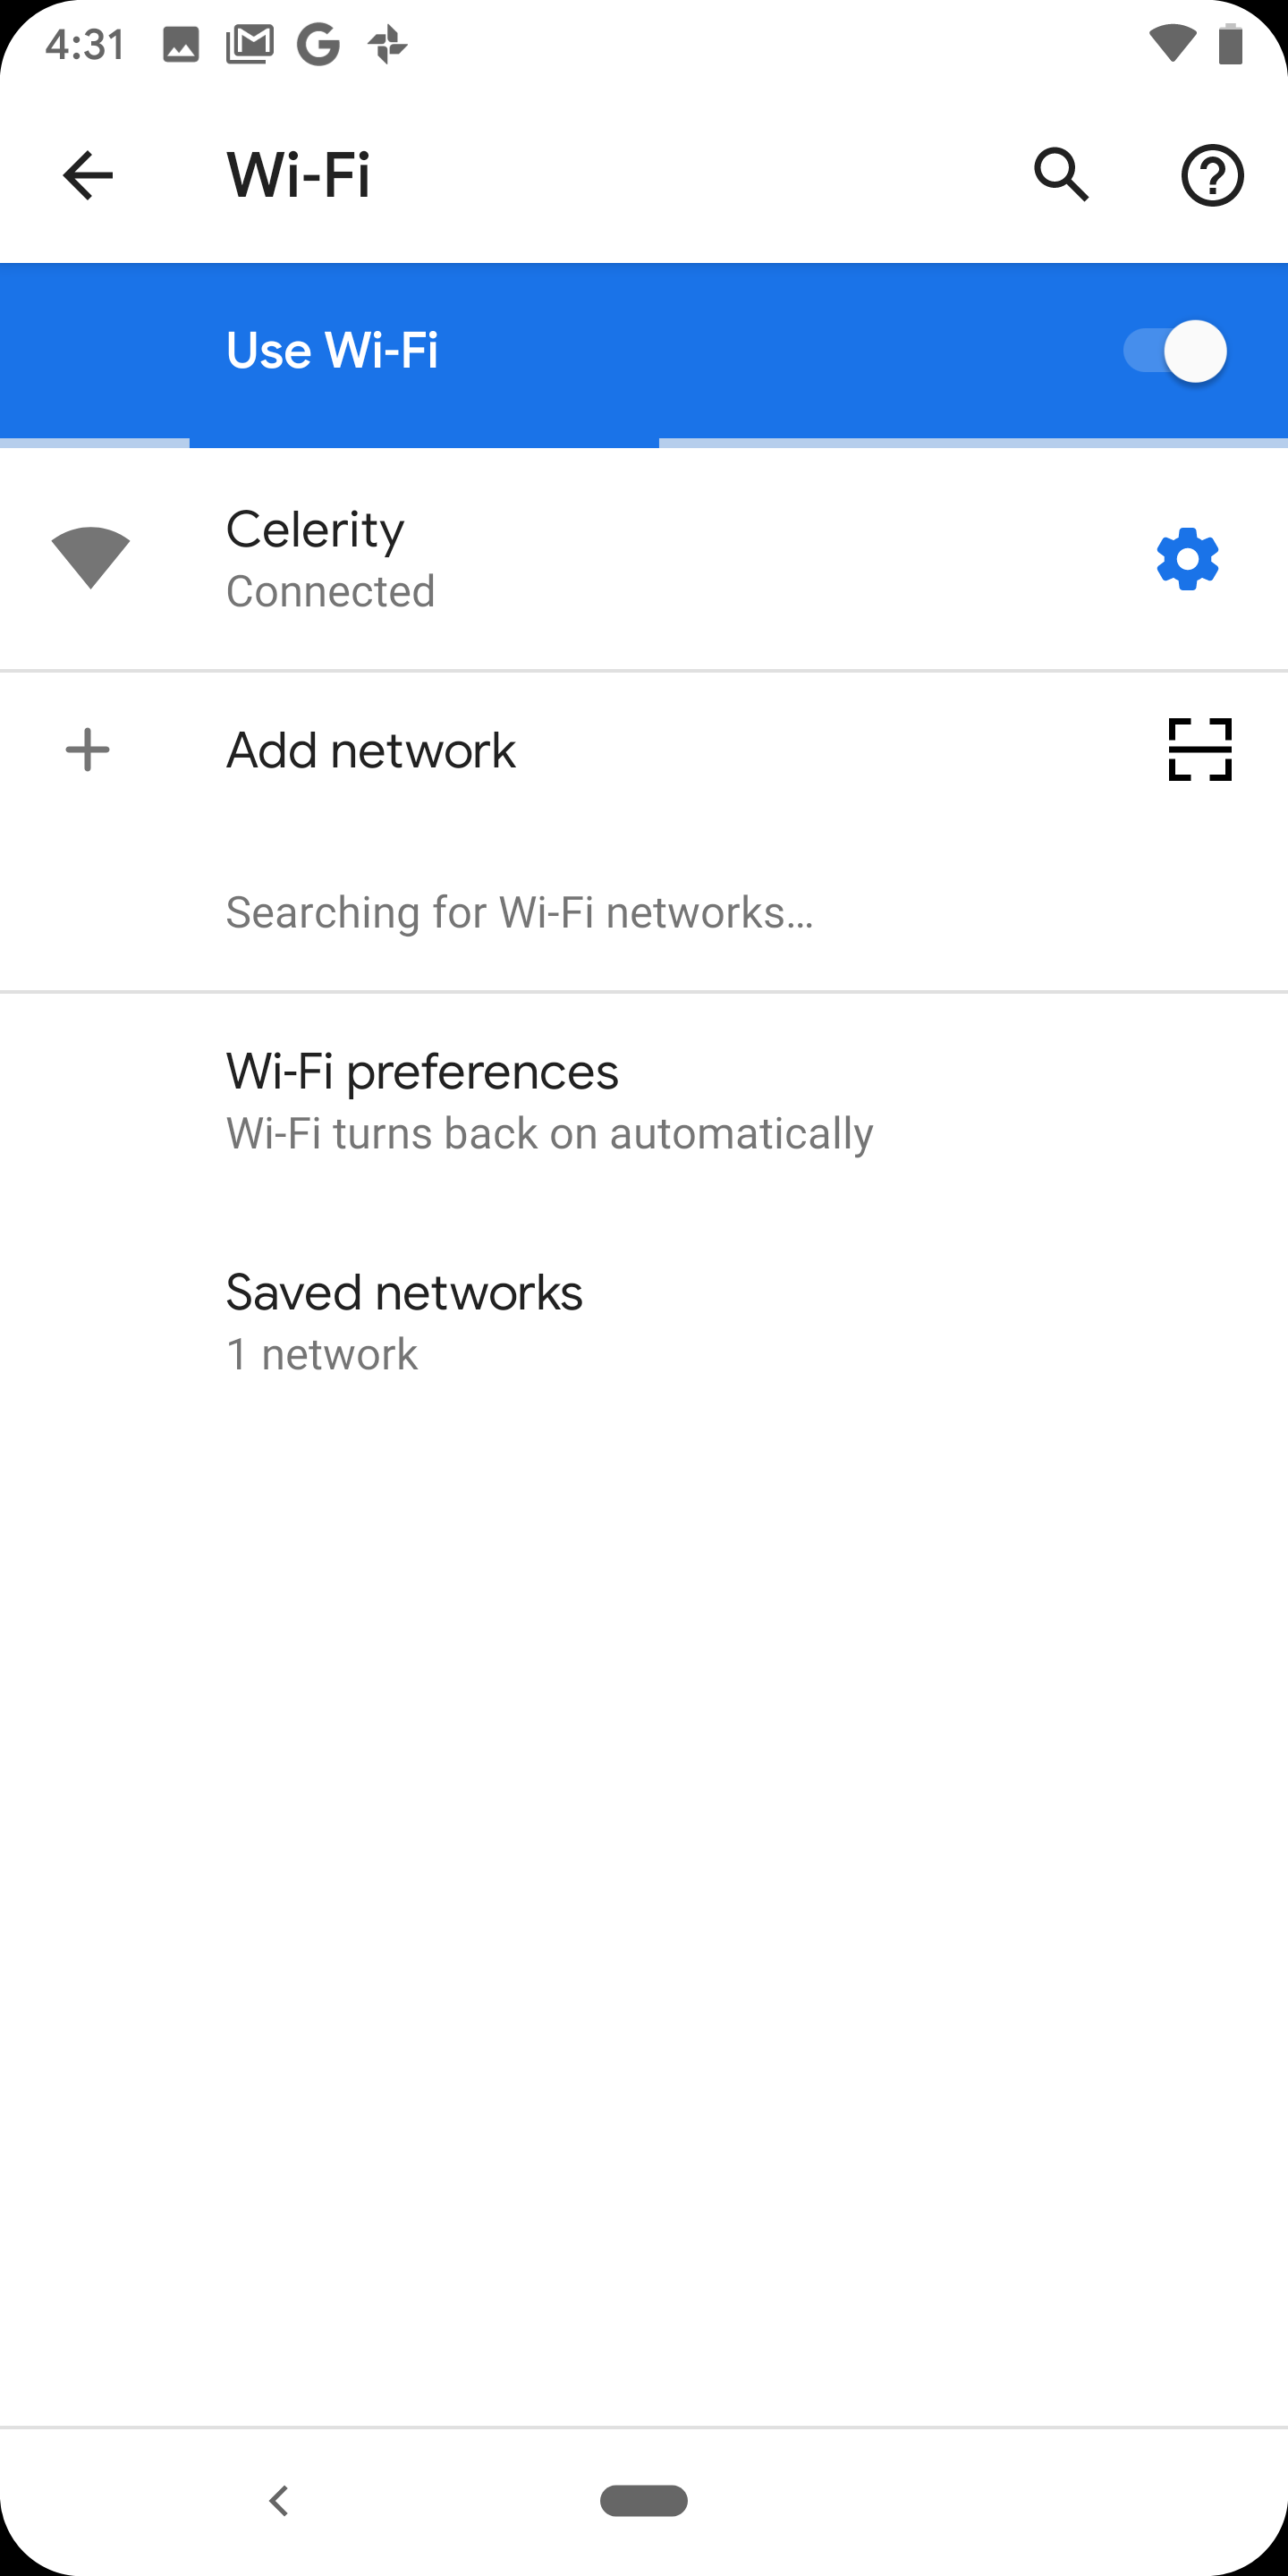 Android Q lets you share and connect to WiFi networks with